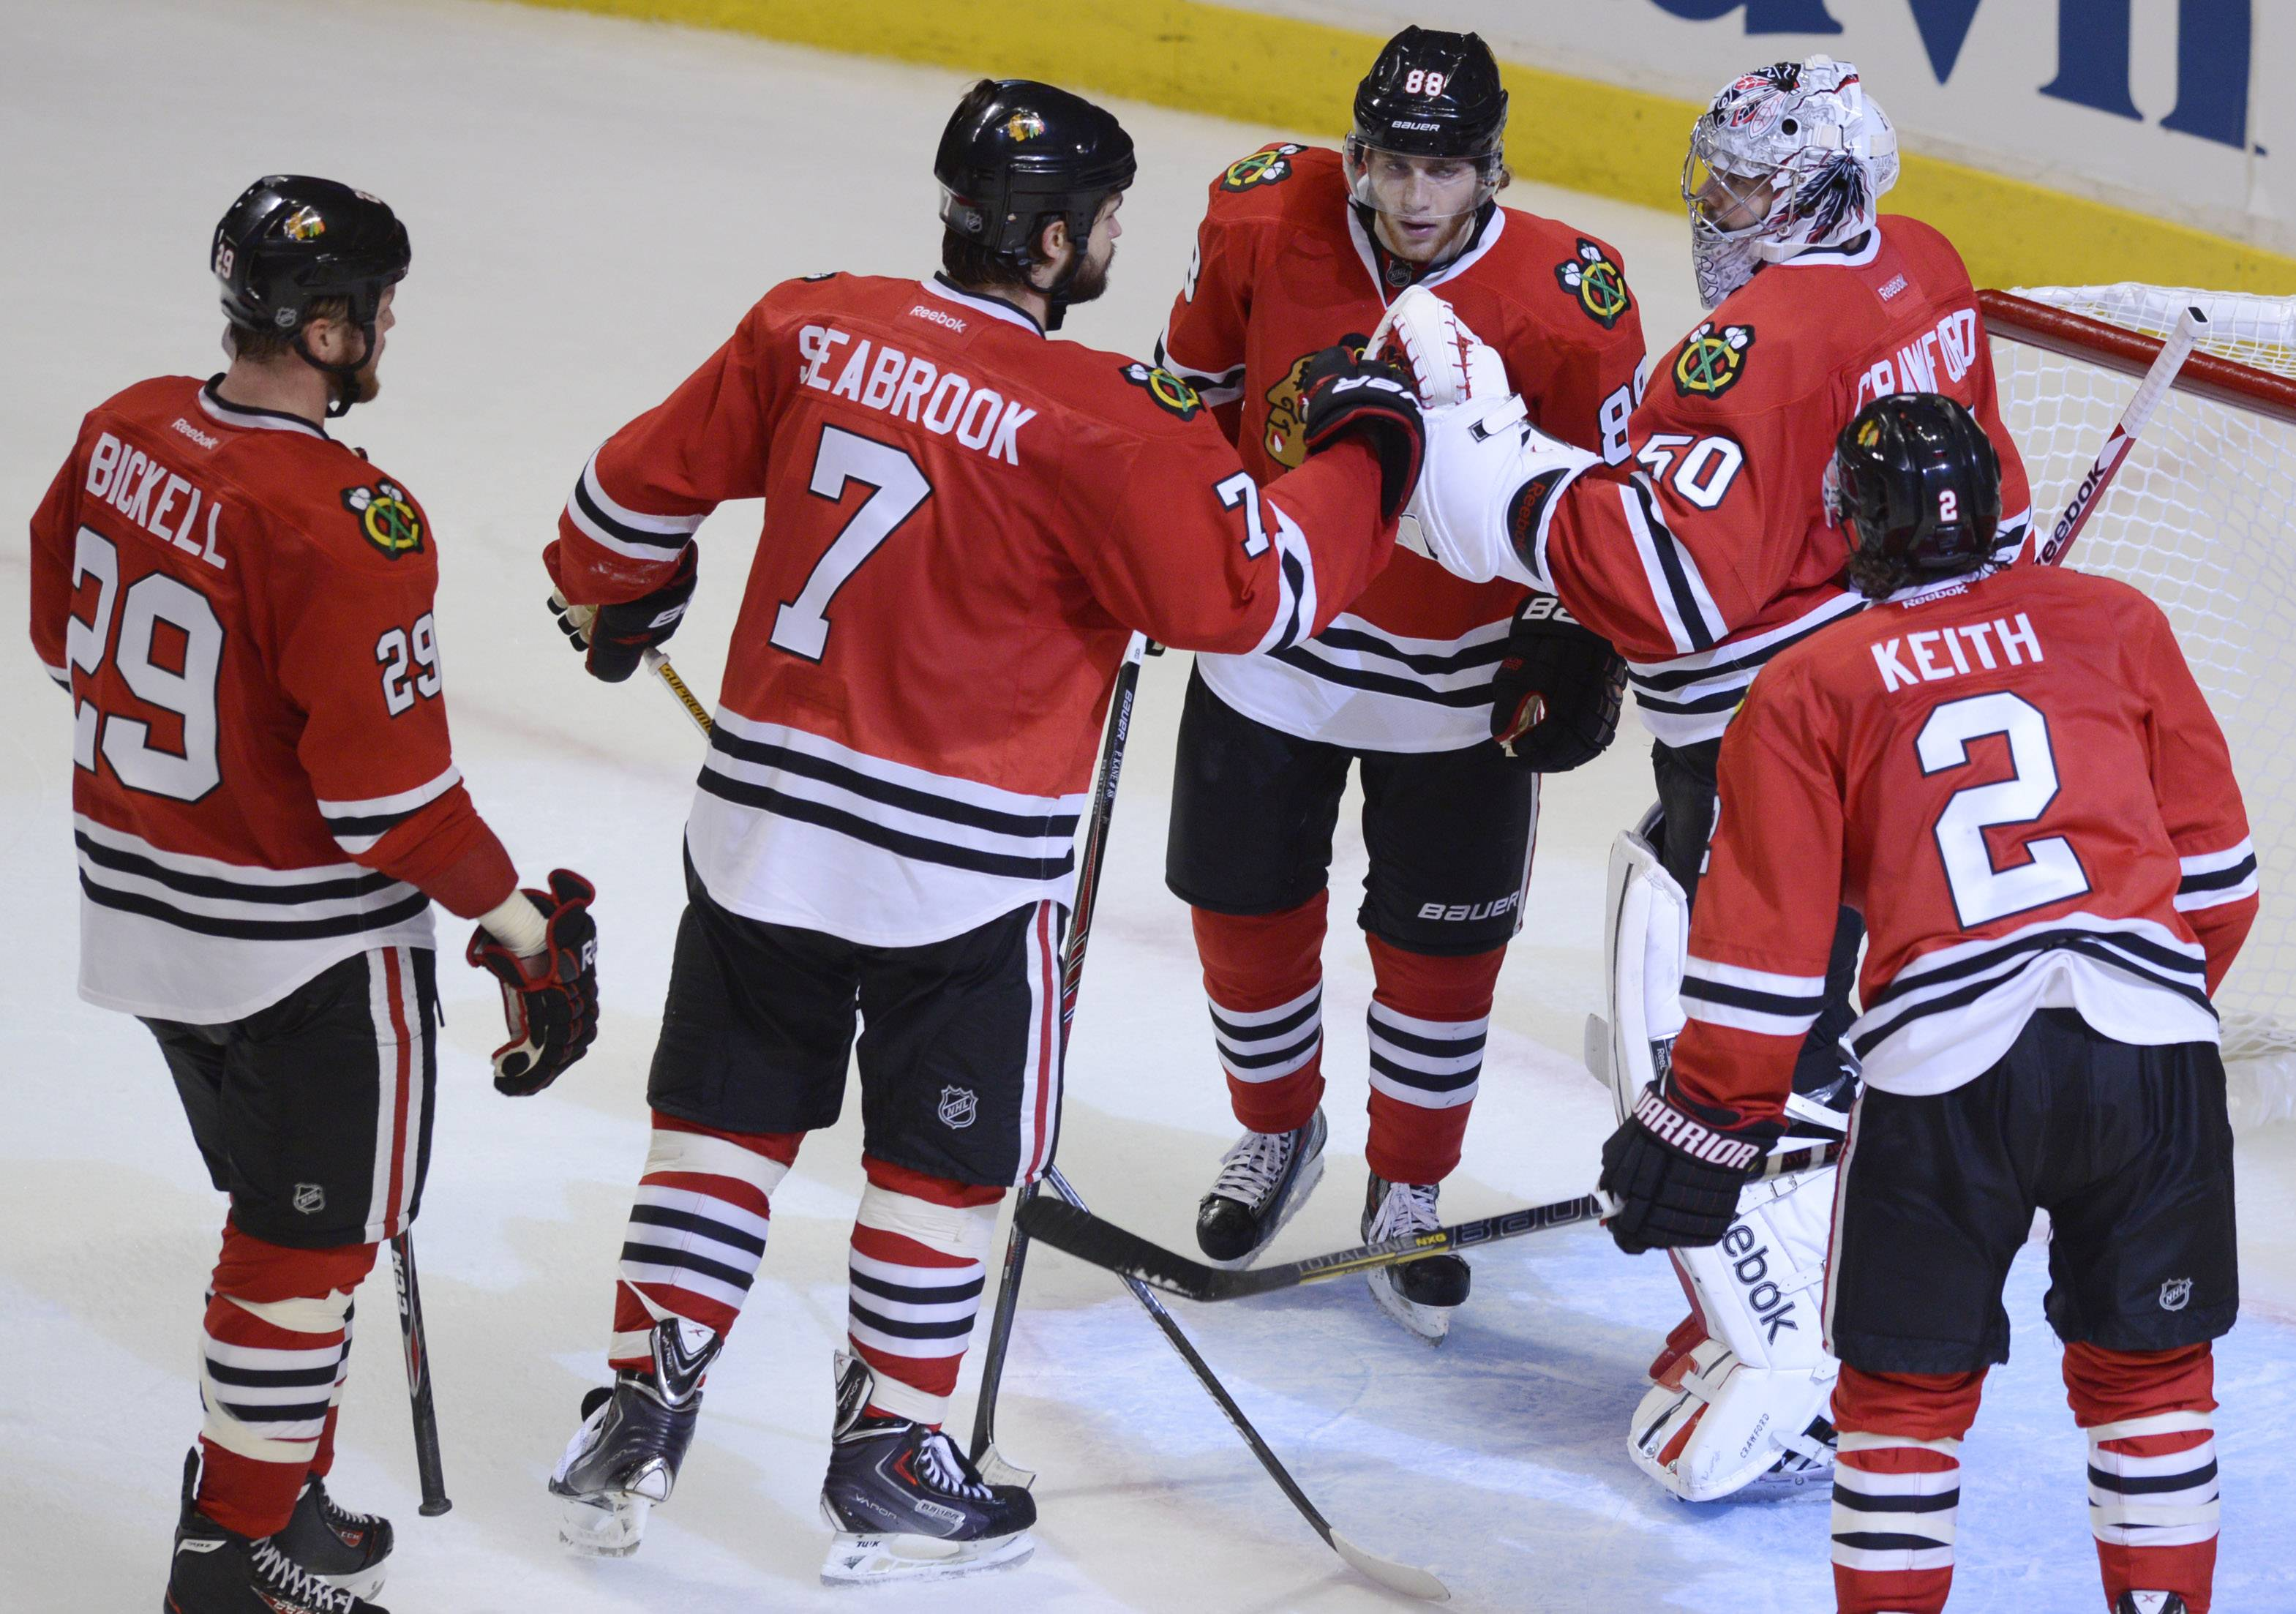 Left to right, Chicago Blackhawks Bryan Bickell, Brent Seabrook, Patrick Kane, goalie Corey Crawford and Duncan Keith celebrate their win over the Los Angeles Kings Sunday.